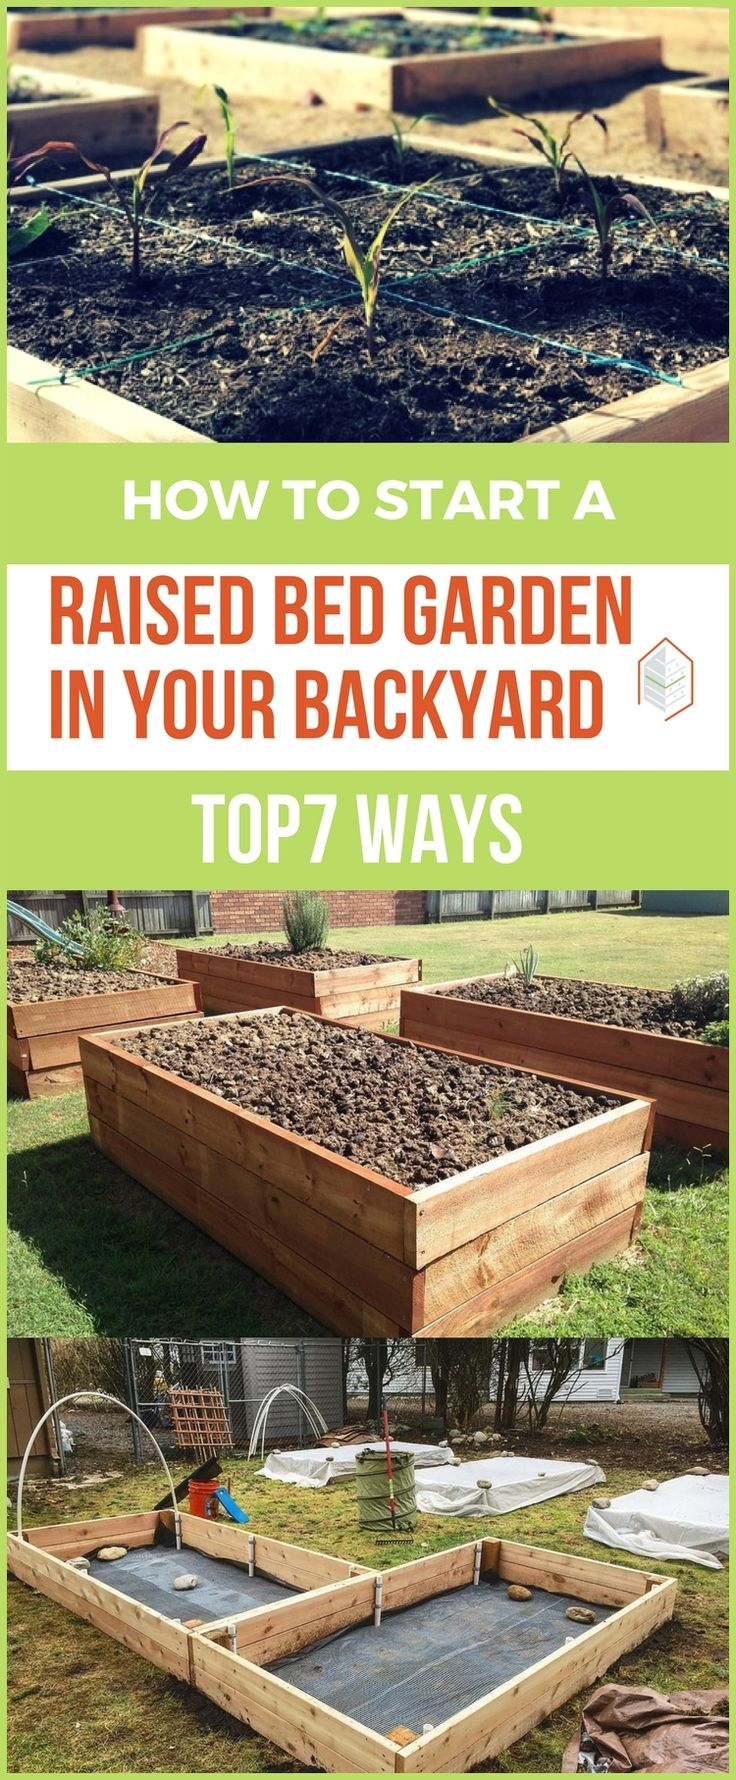 How to Start a Raised Bed Garden in Your Backyard: Top 7 Ways. If you love gardening, you may often wonder how to start a raised bed garden in your backyard to protect your plants from weeds and pests. #urbangardening #urbanfarming #gardening #diy #garden #ugrpost